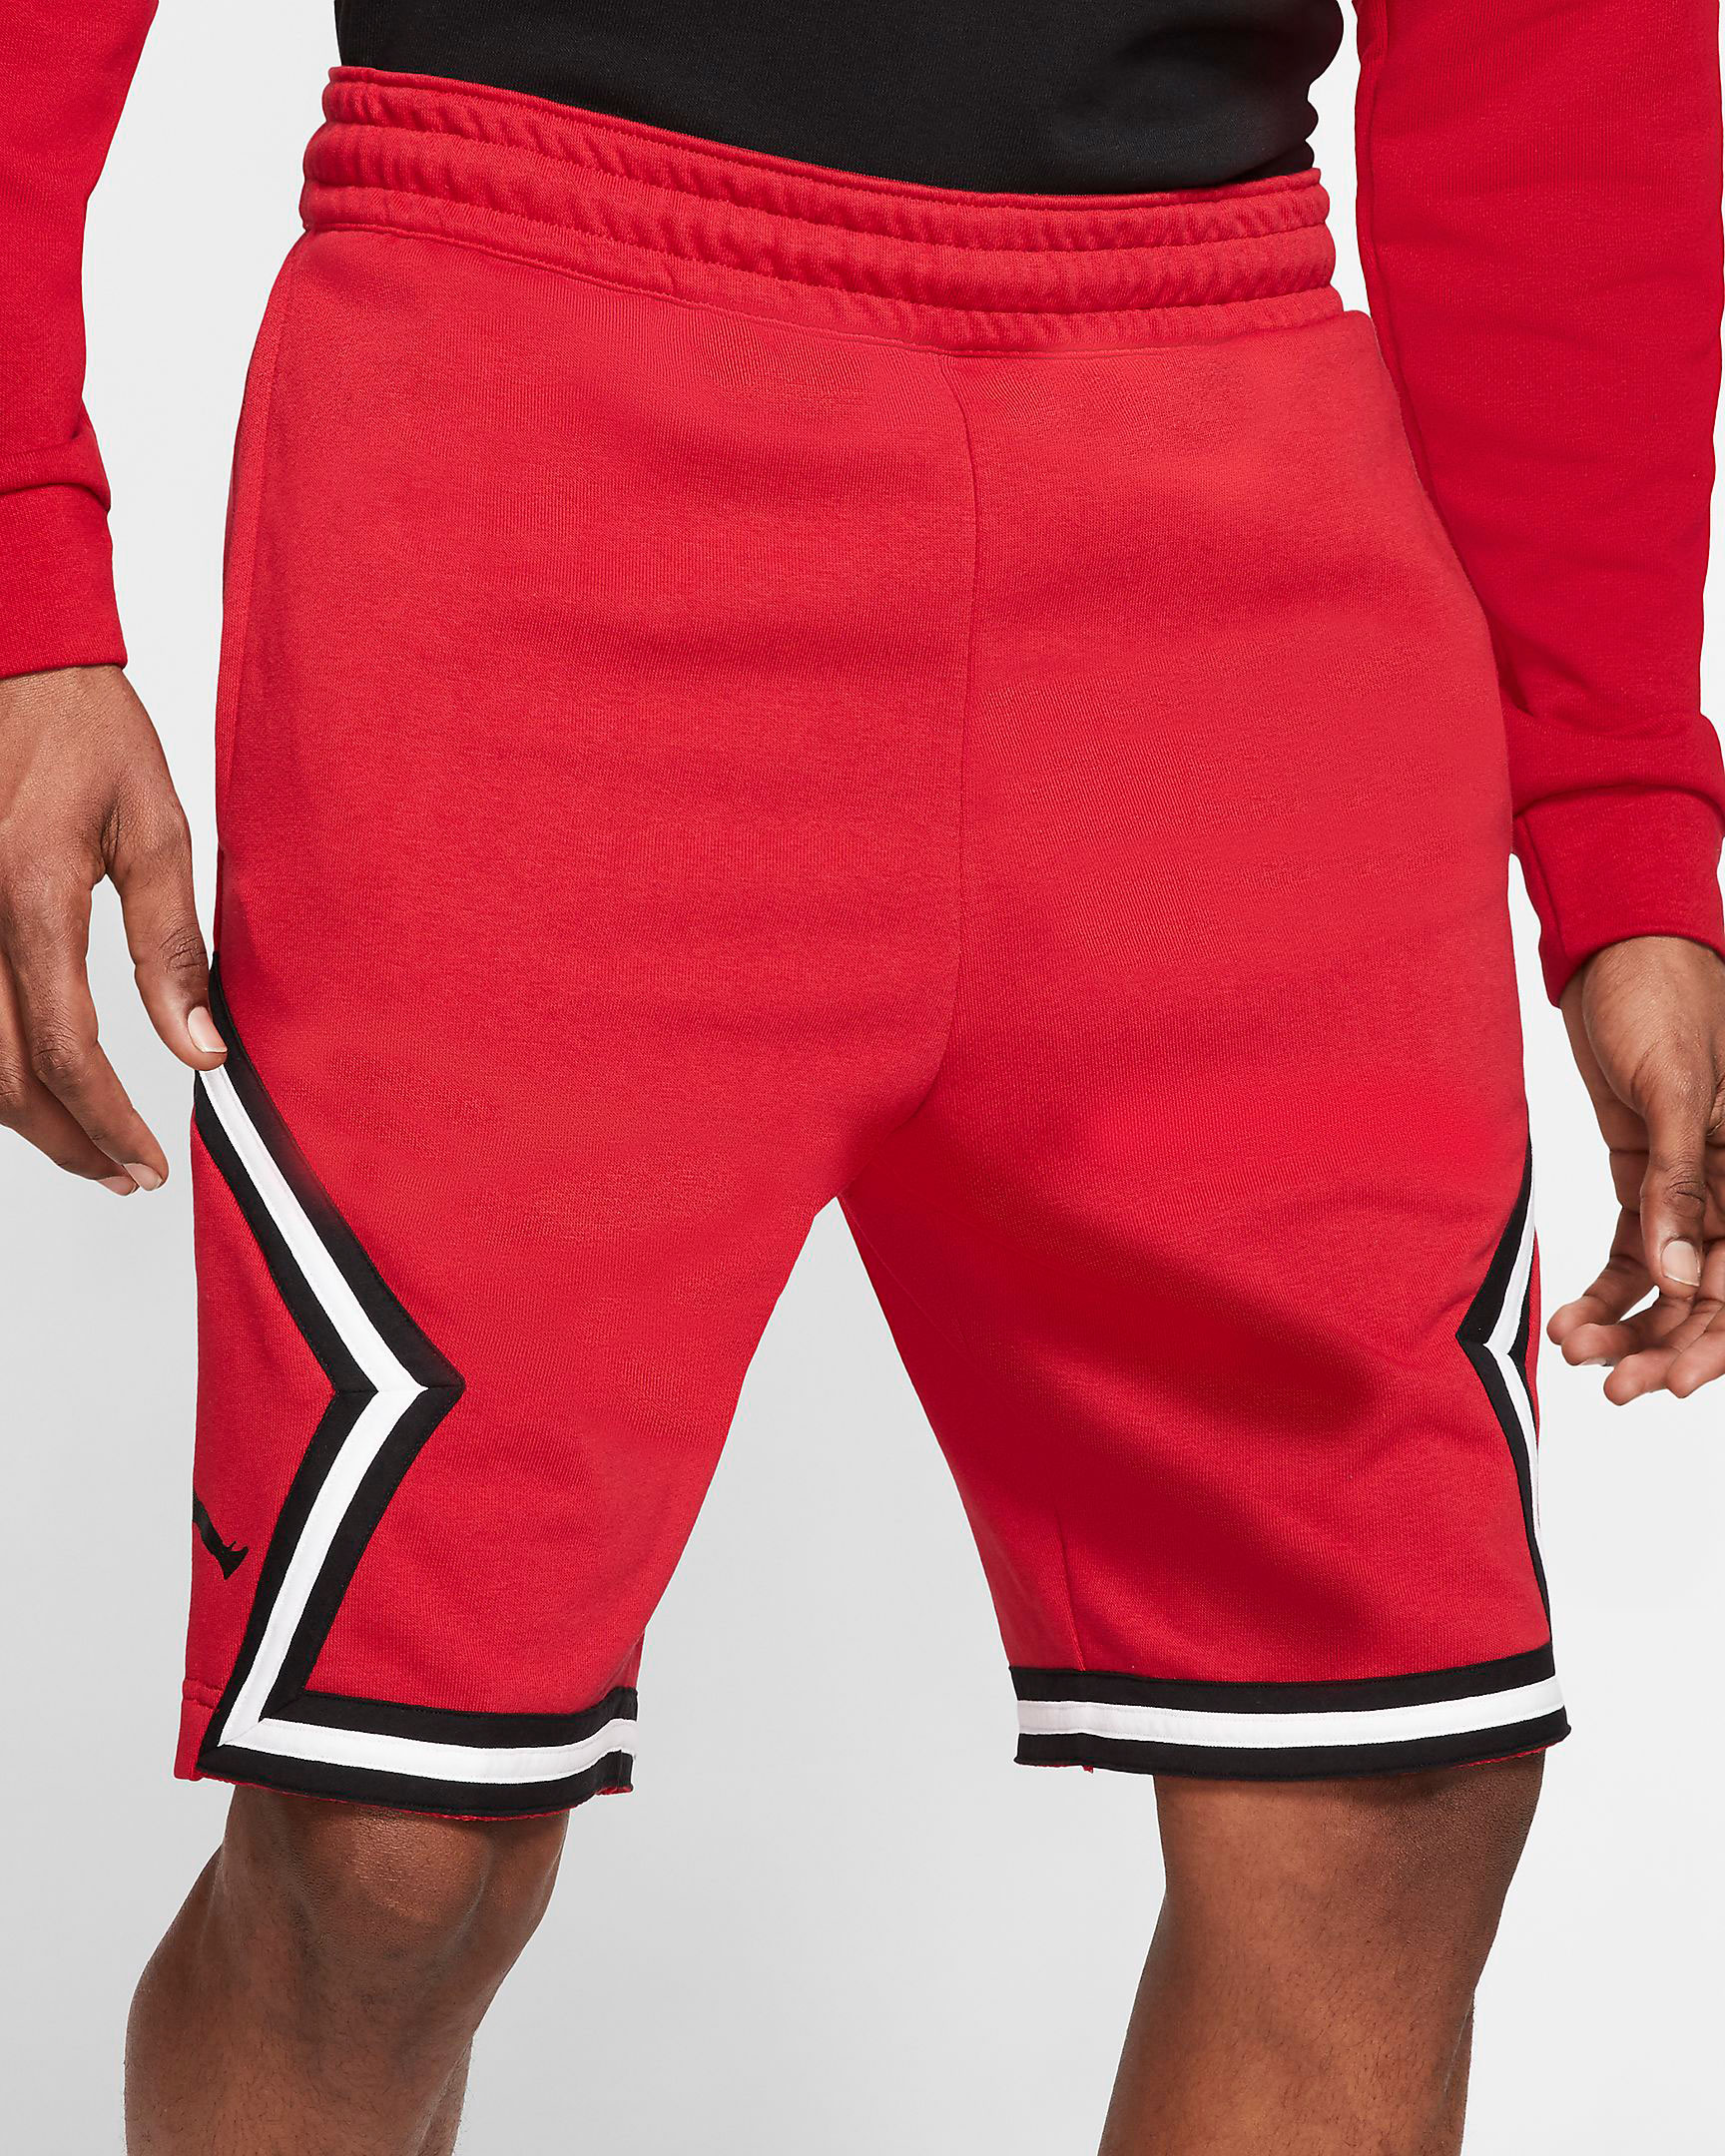 top-3-jordan-5-shorts-match-1